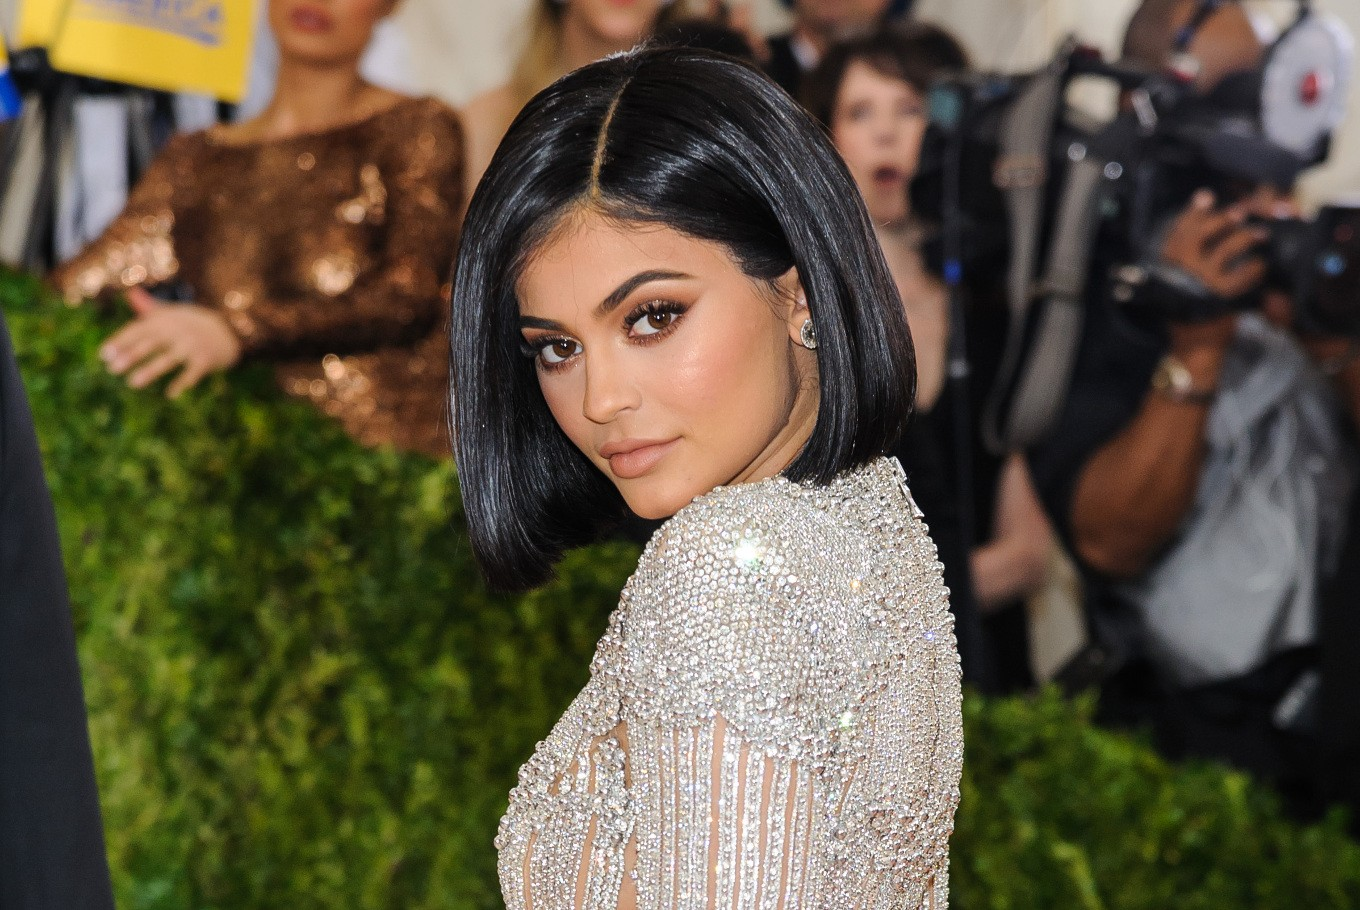 Kylie Jenner joins with family that can keep up with Kardashians